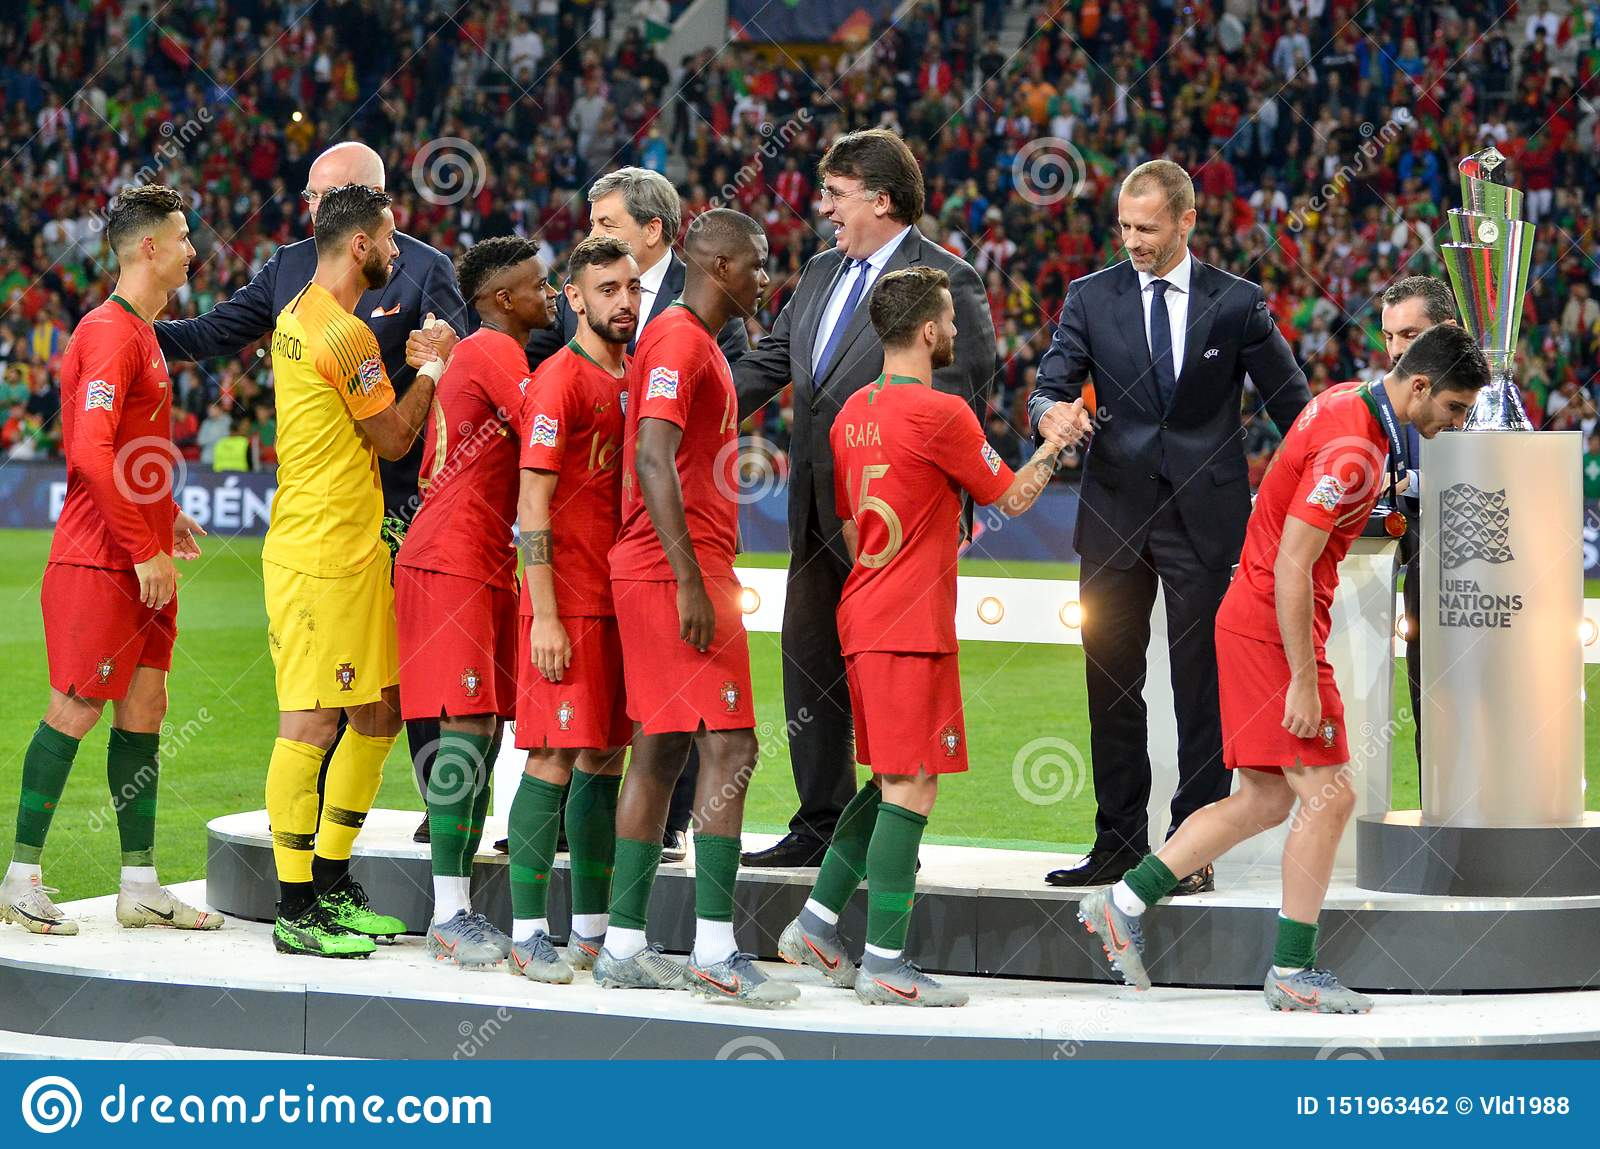 Porto Portuglal June 09 2019 Portugal National Team Receive Gold Medals During The Uefa Nations League Finals Match Between Editorial Photography Image Of William Field 151963462